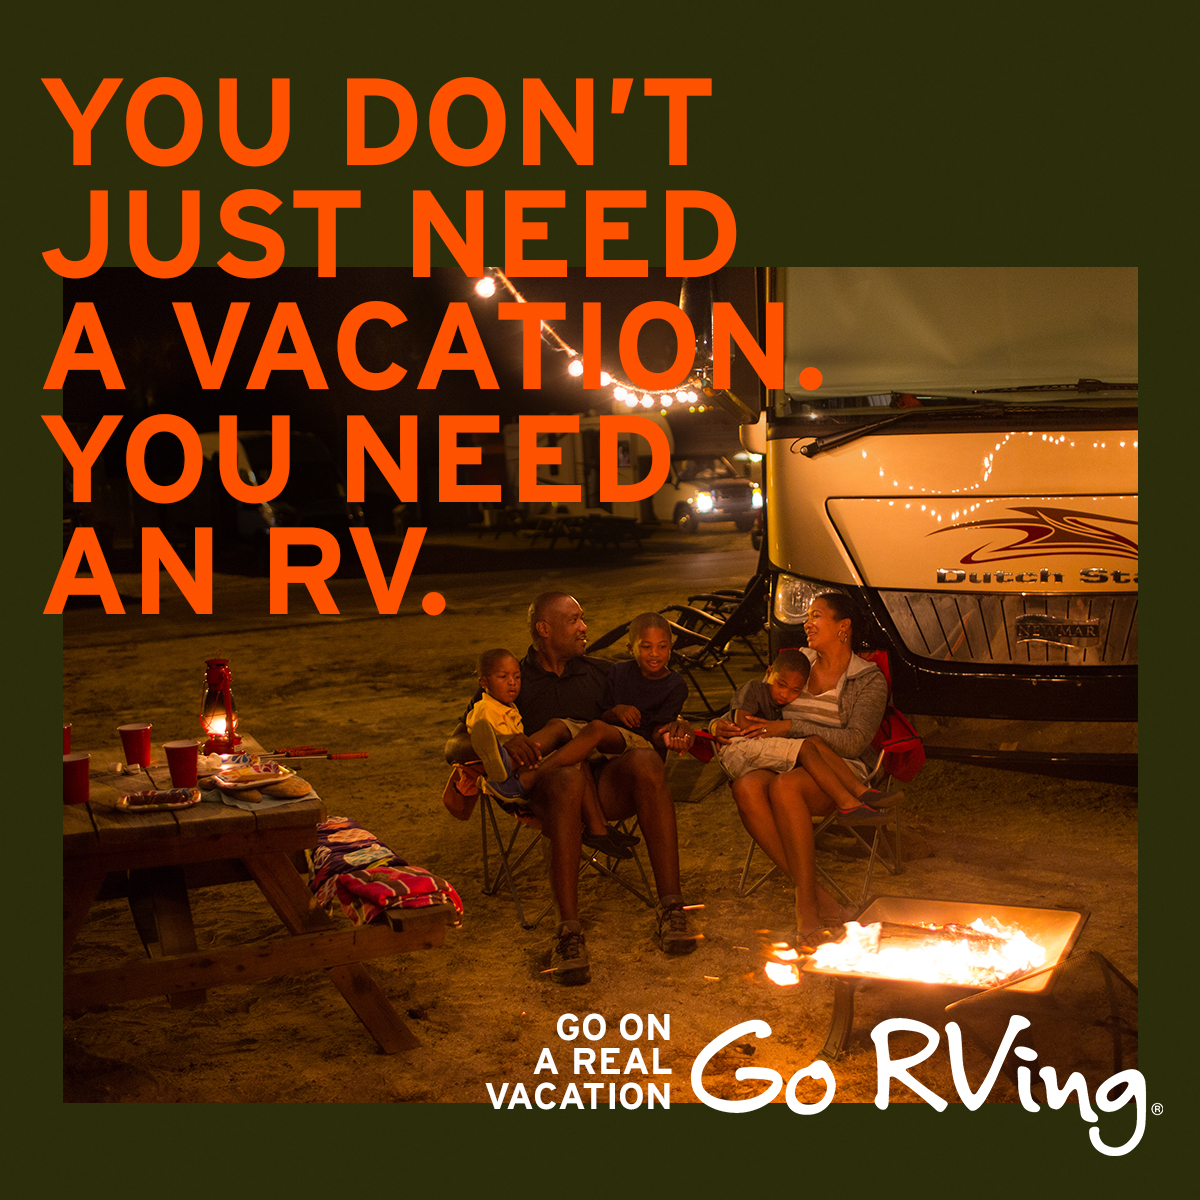 Get ready to take the wheel, and go on a #RealVacation. Find an RV dealer on gorving.com